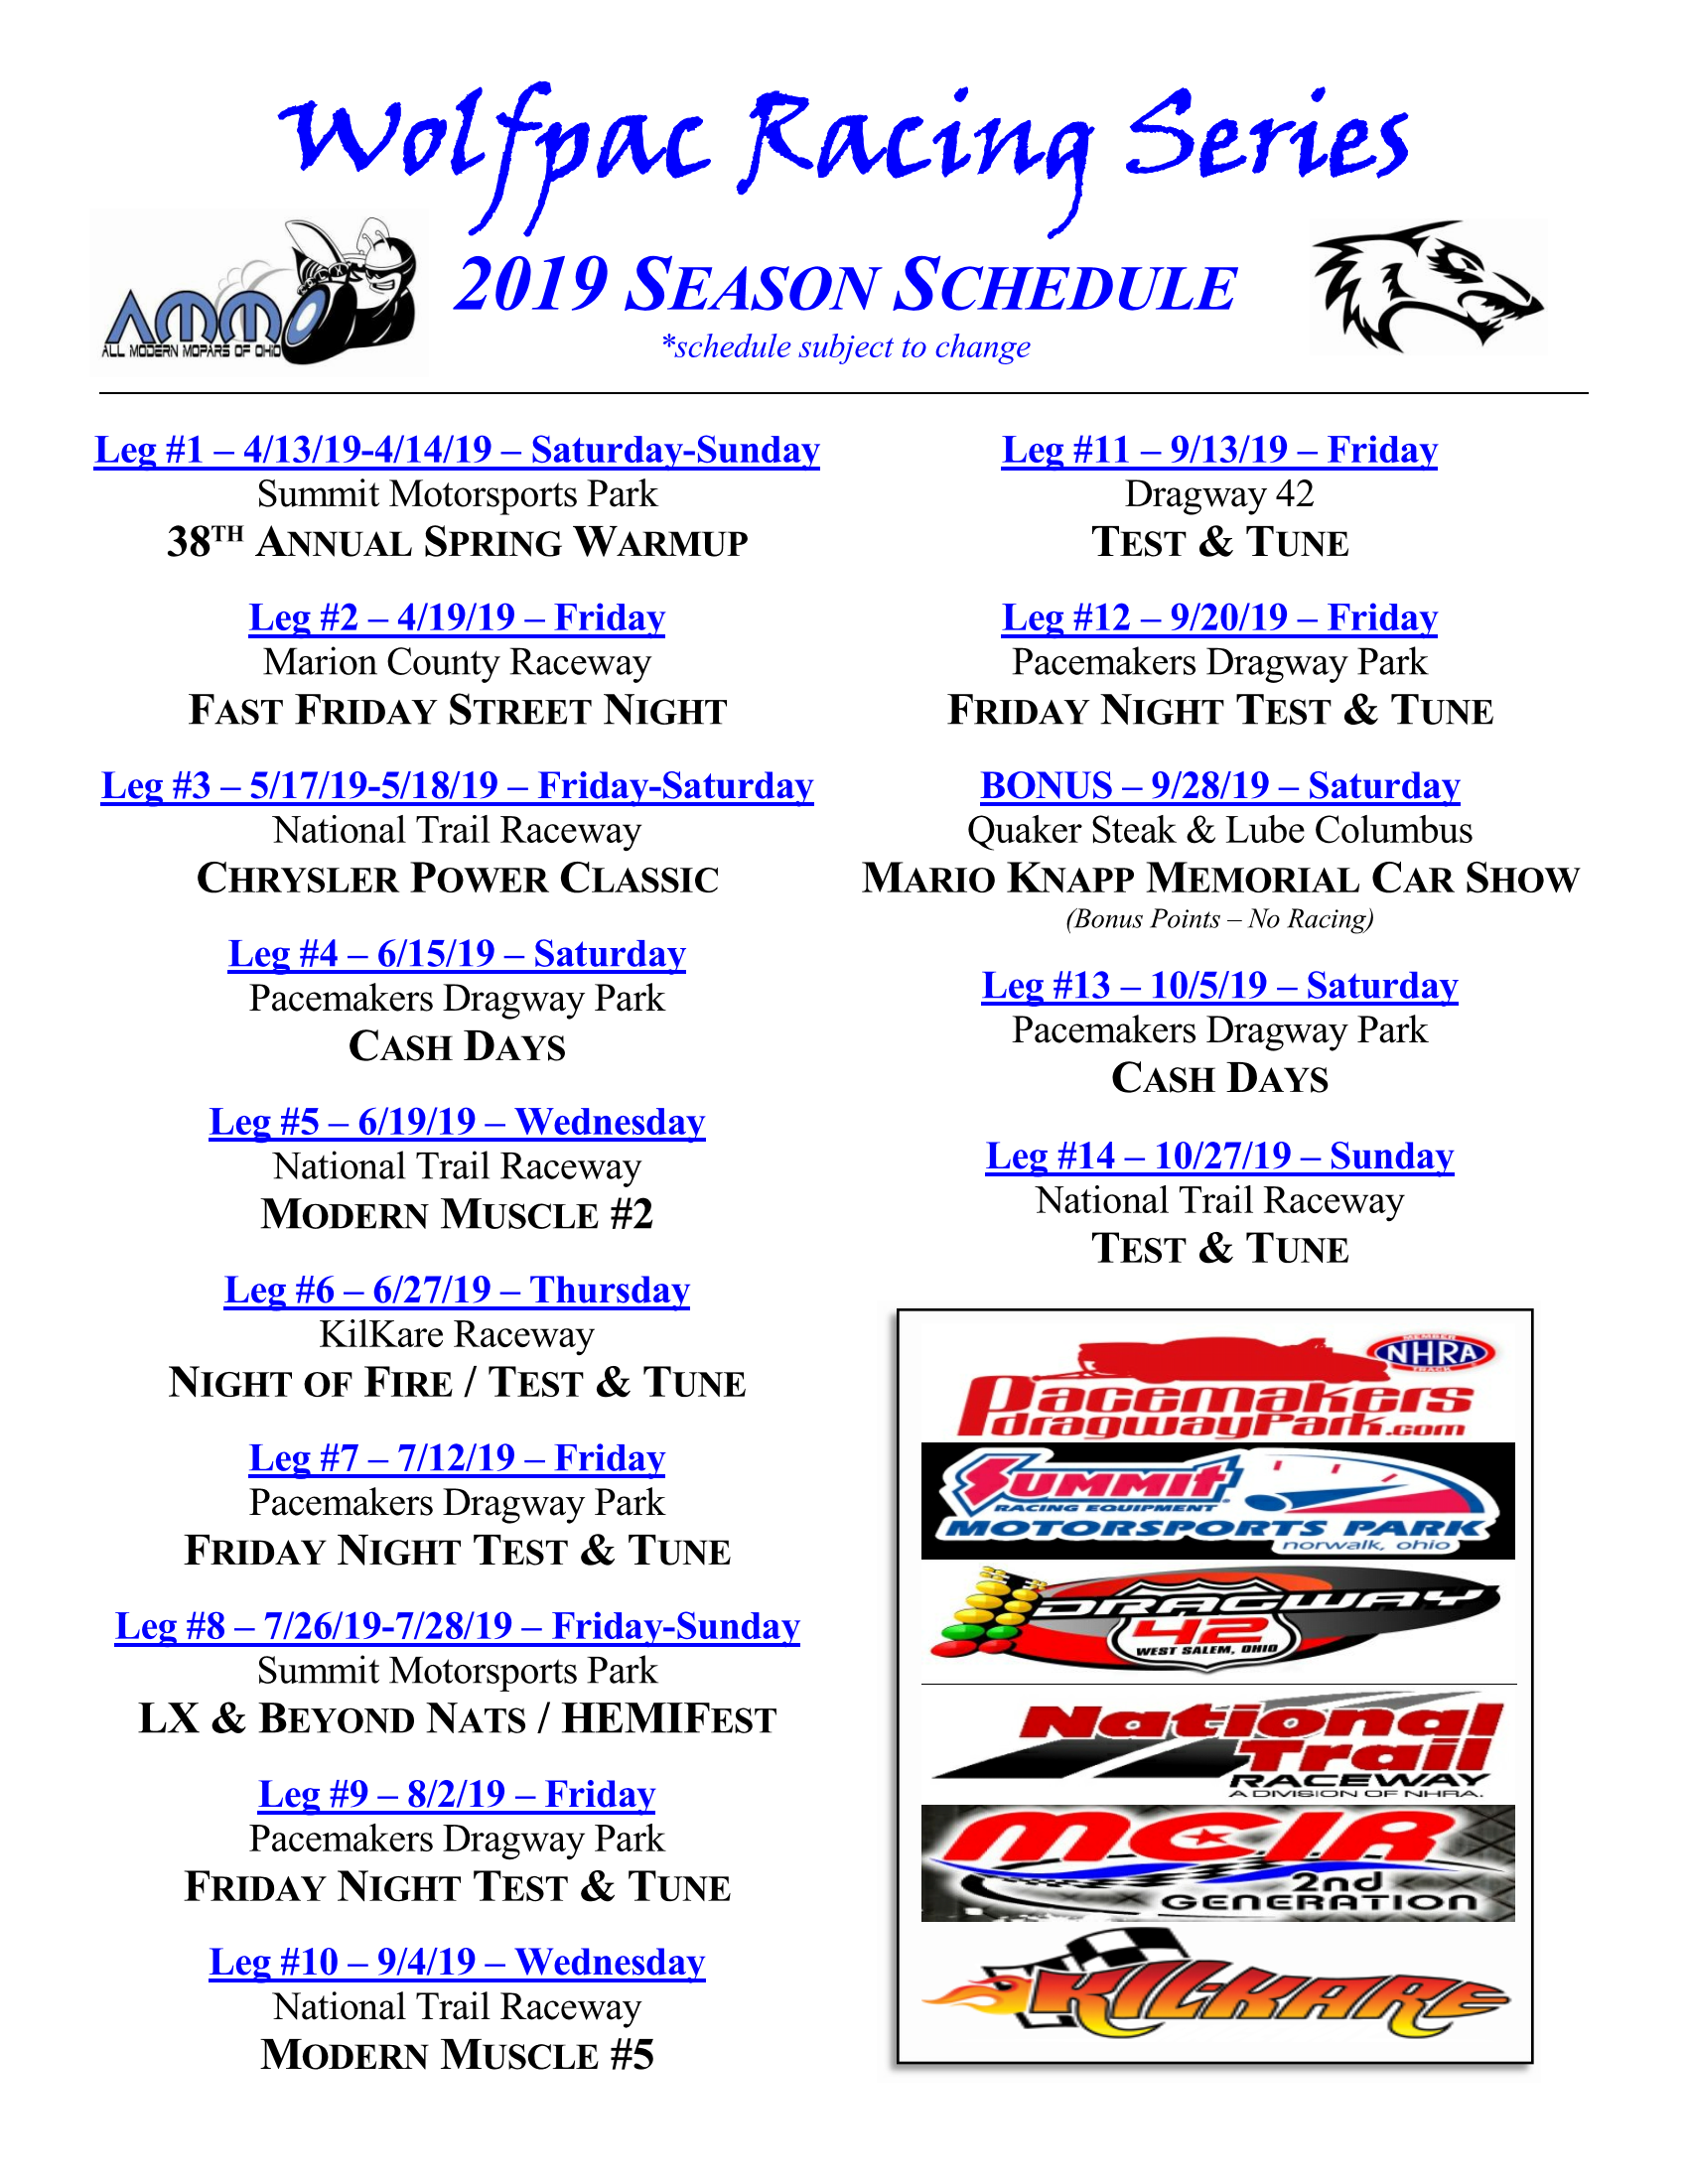 WRS - 2019 Season Schedule.png